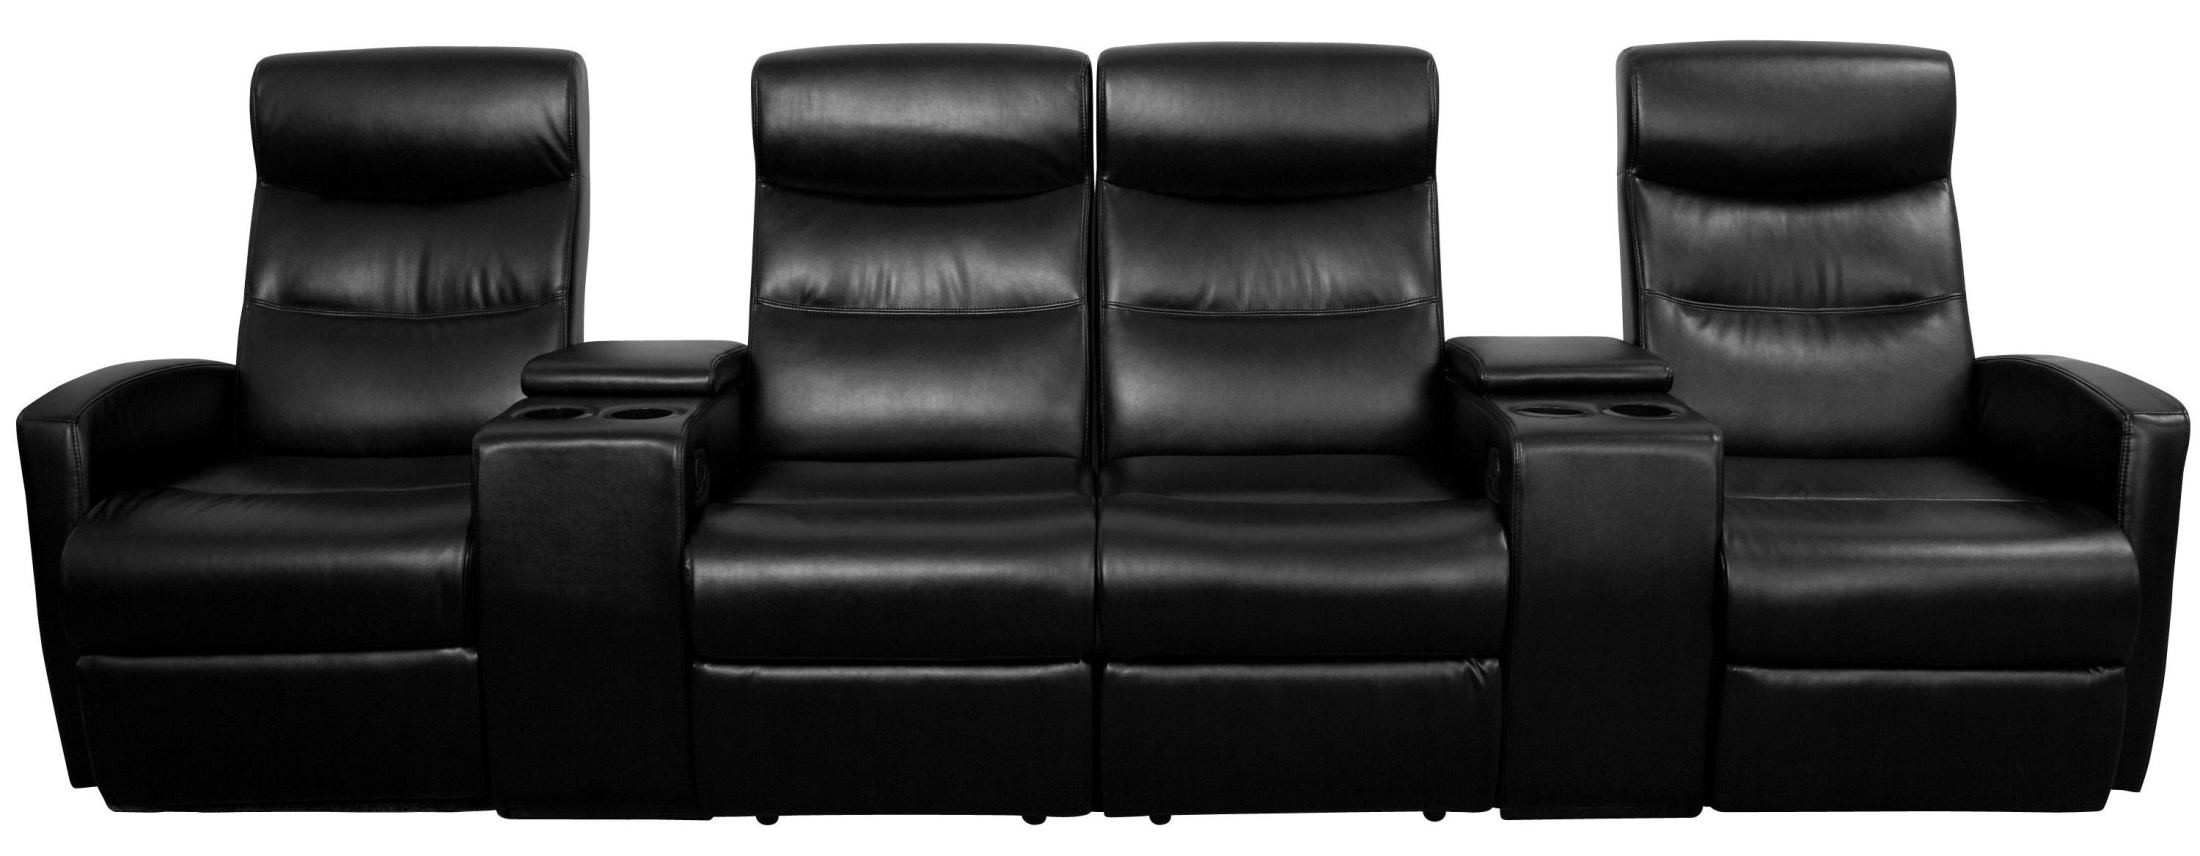 Black Leather 4 Seat Home Theater Console Recliner From Renegade BT 70273 4